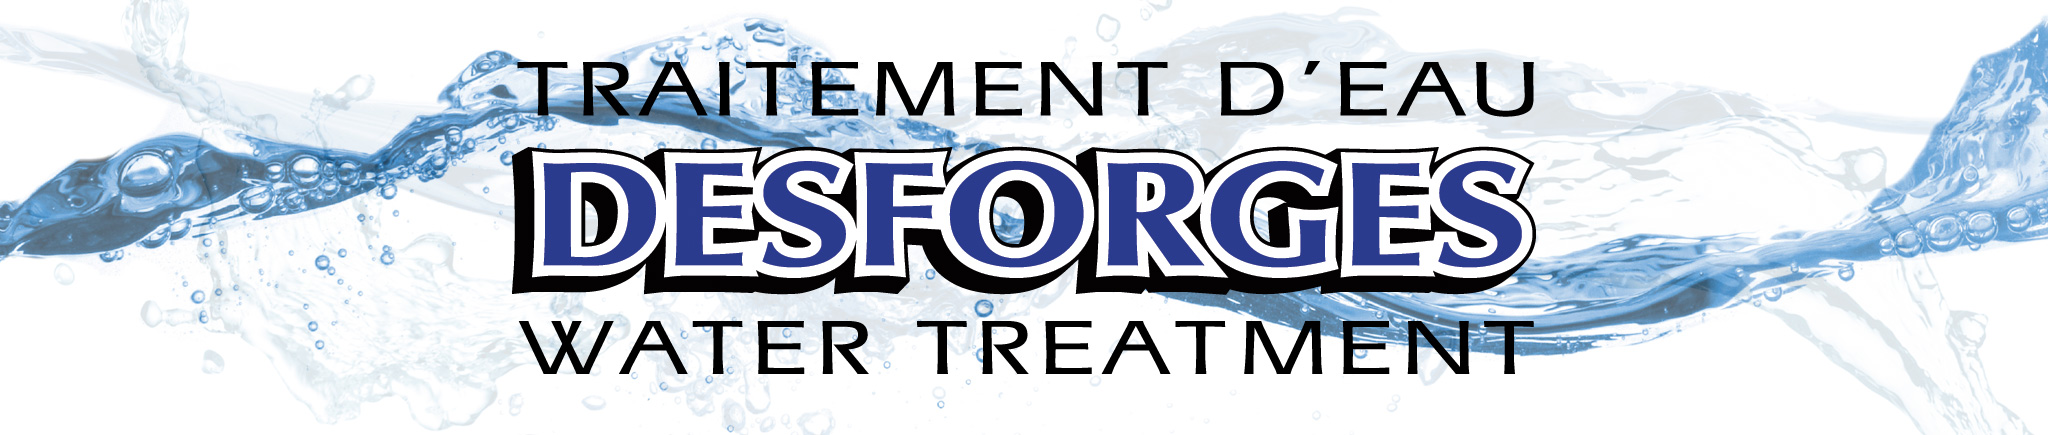 Desforges Water Treatment in Ottawa and in Glengarry, Prescott-Russell, near Ottawa-Water Treatment Ottawa